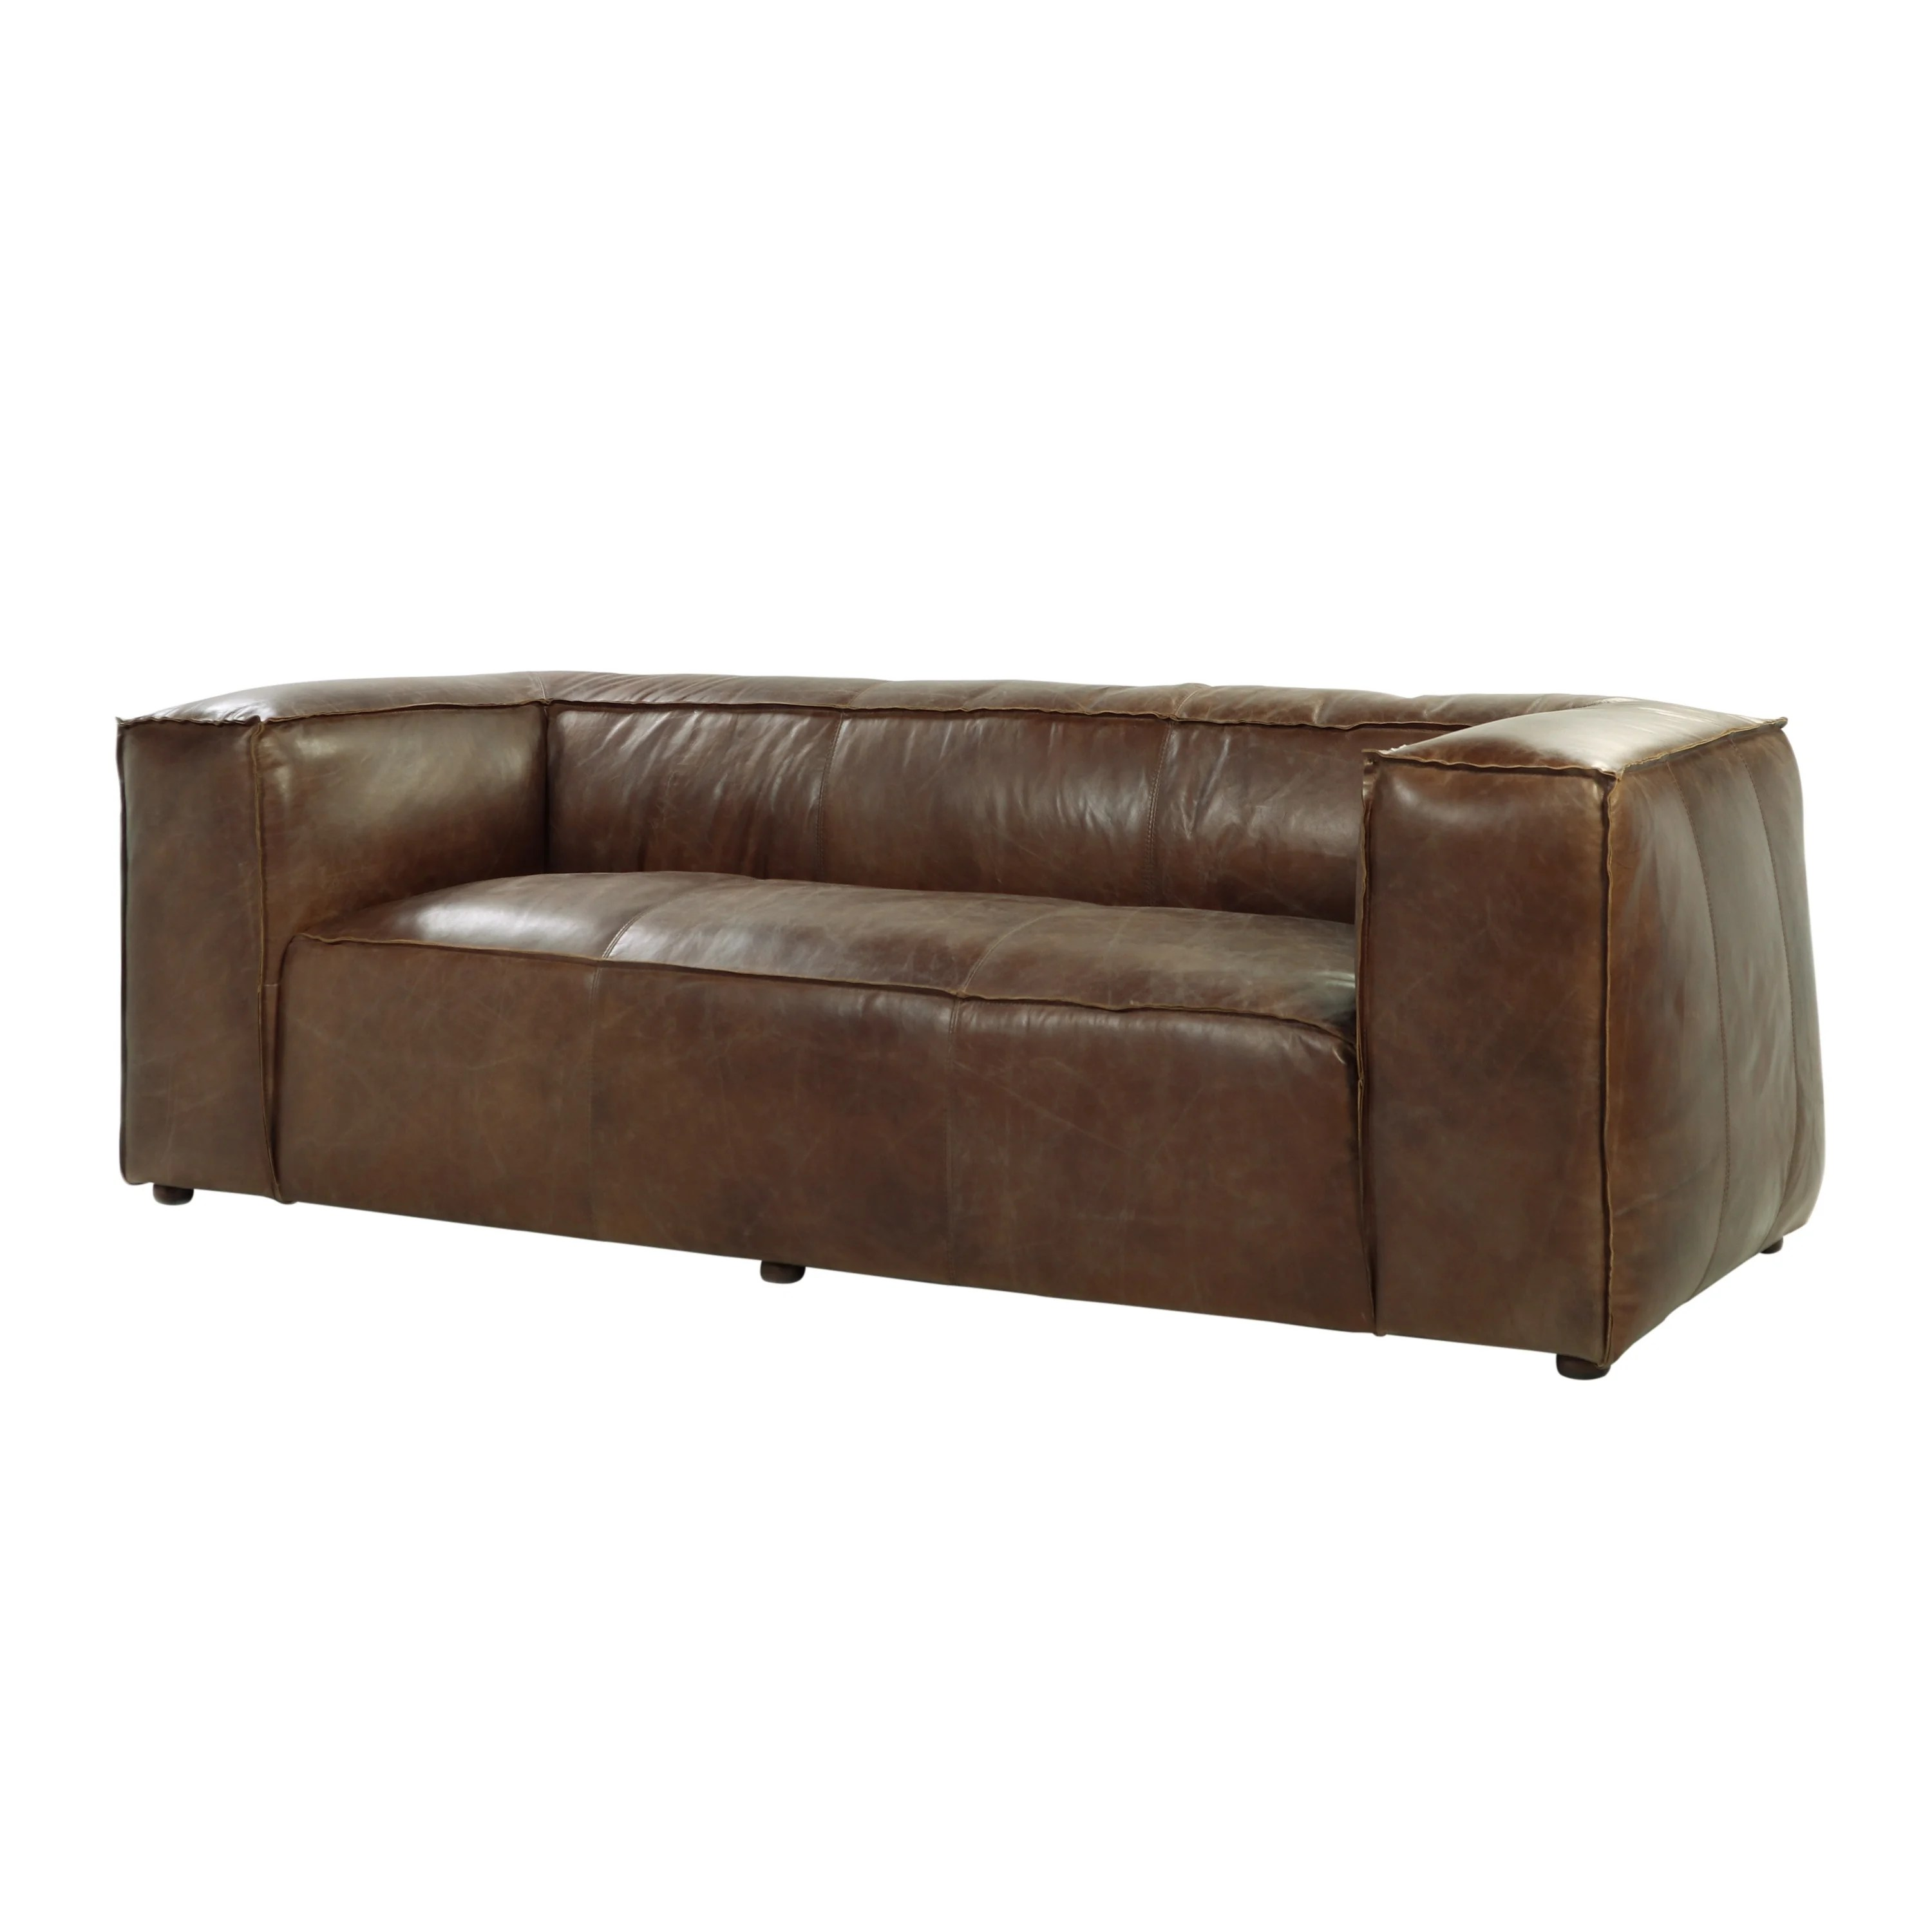 Brown Real Leather Couch Acme Furniture Brancaster Top Grain Leather Sofa Retro Brown